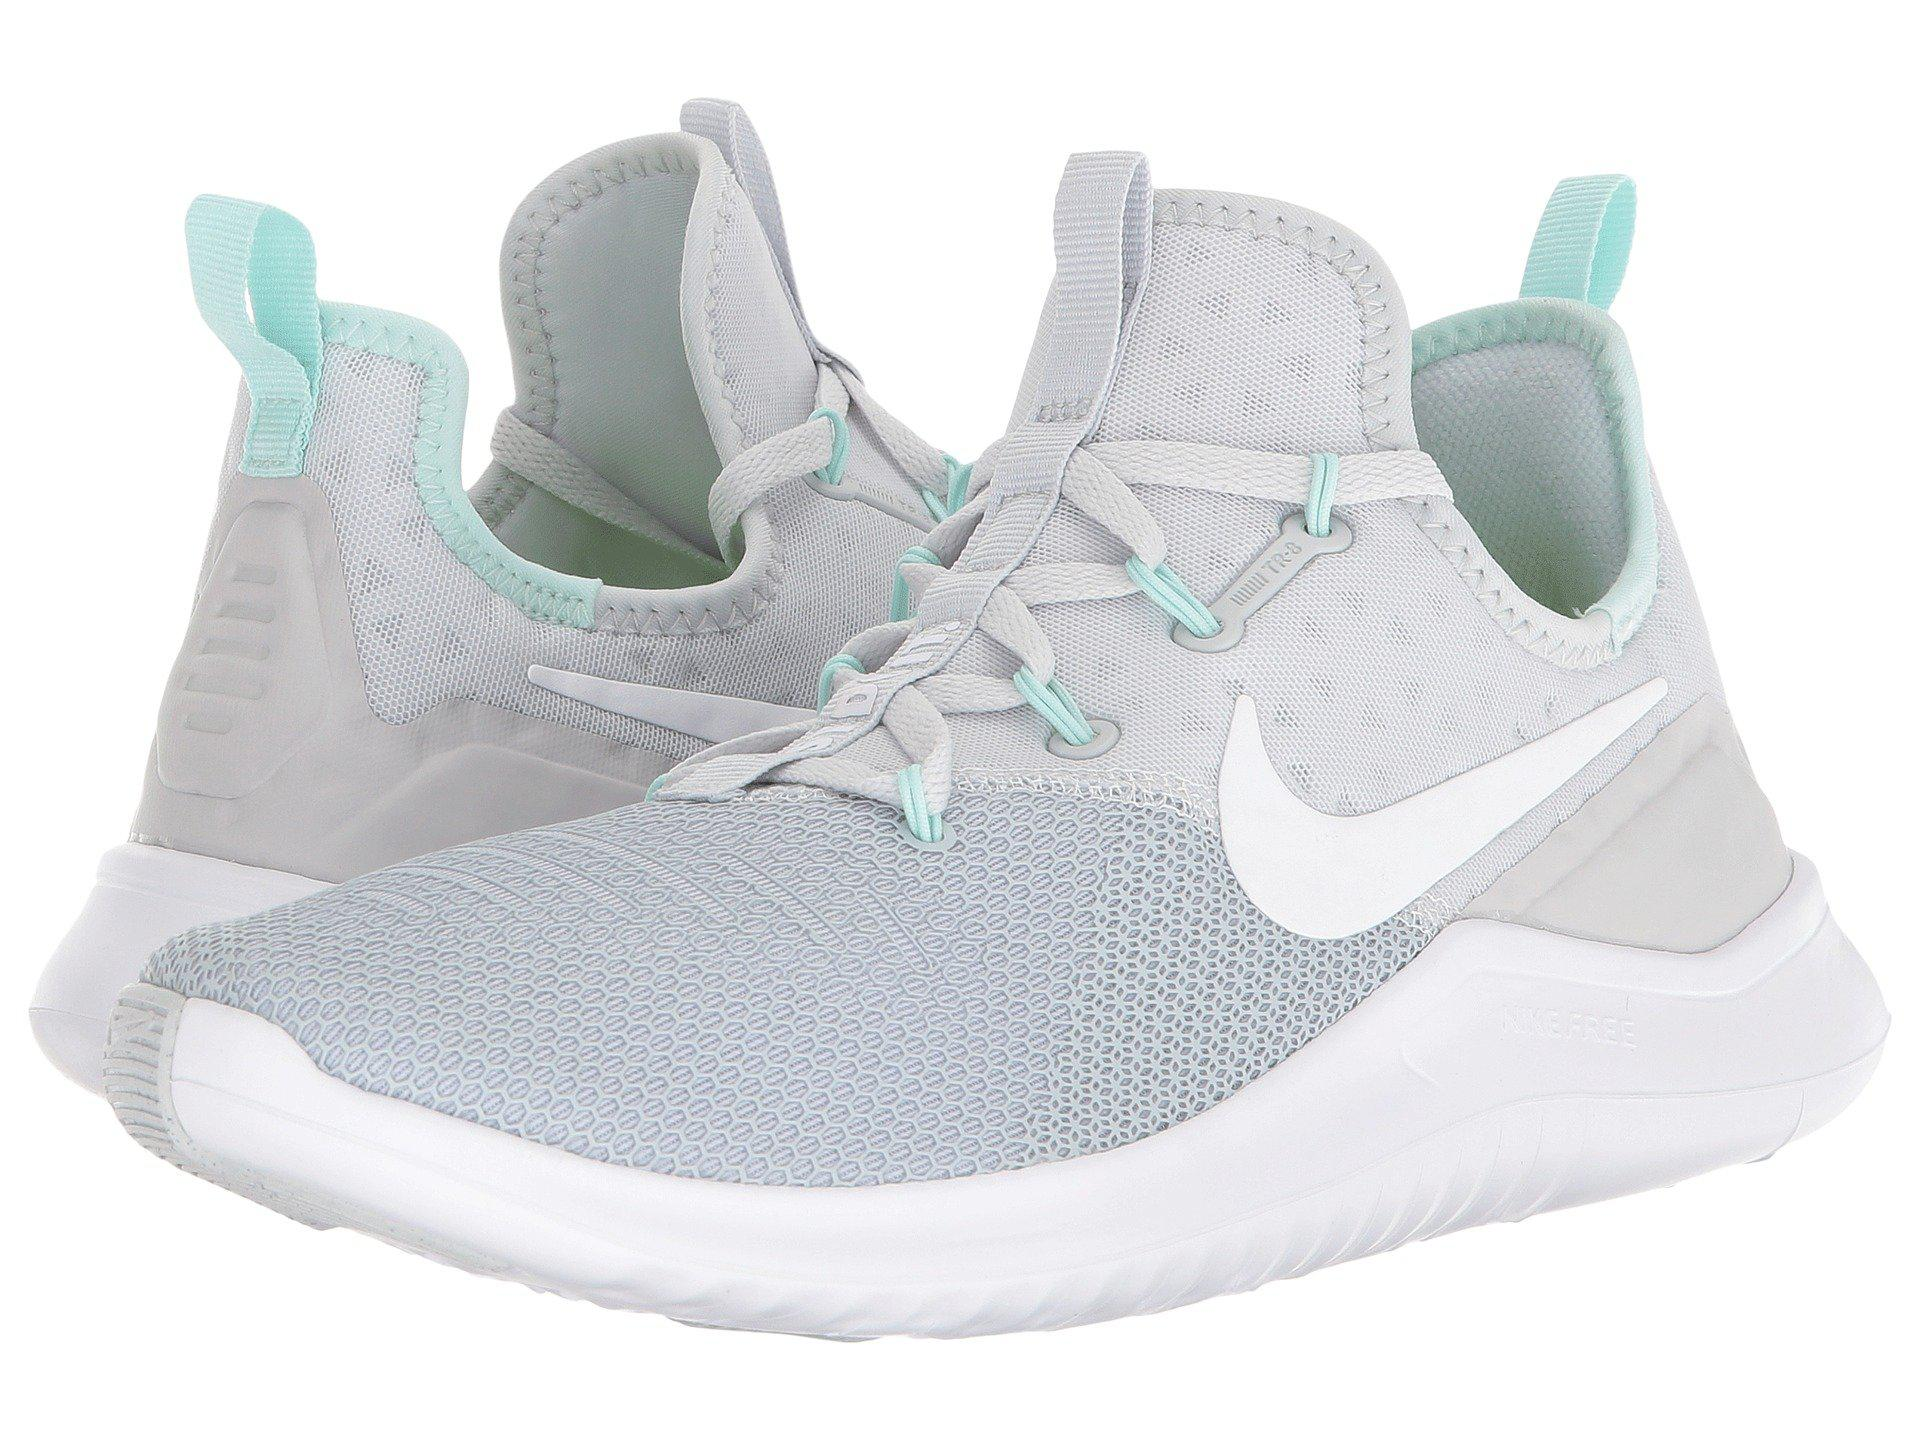 Lyst - Nike Free Tr 8 in White - Save 24% d6b948136